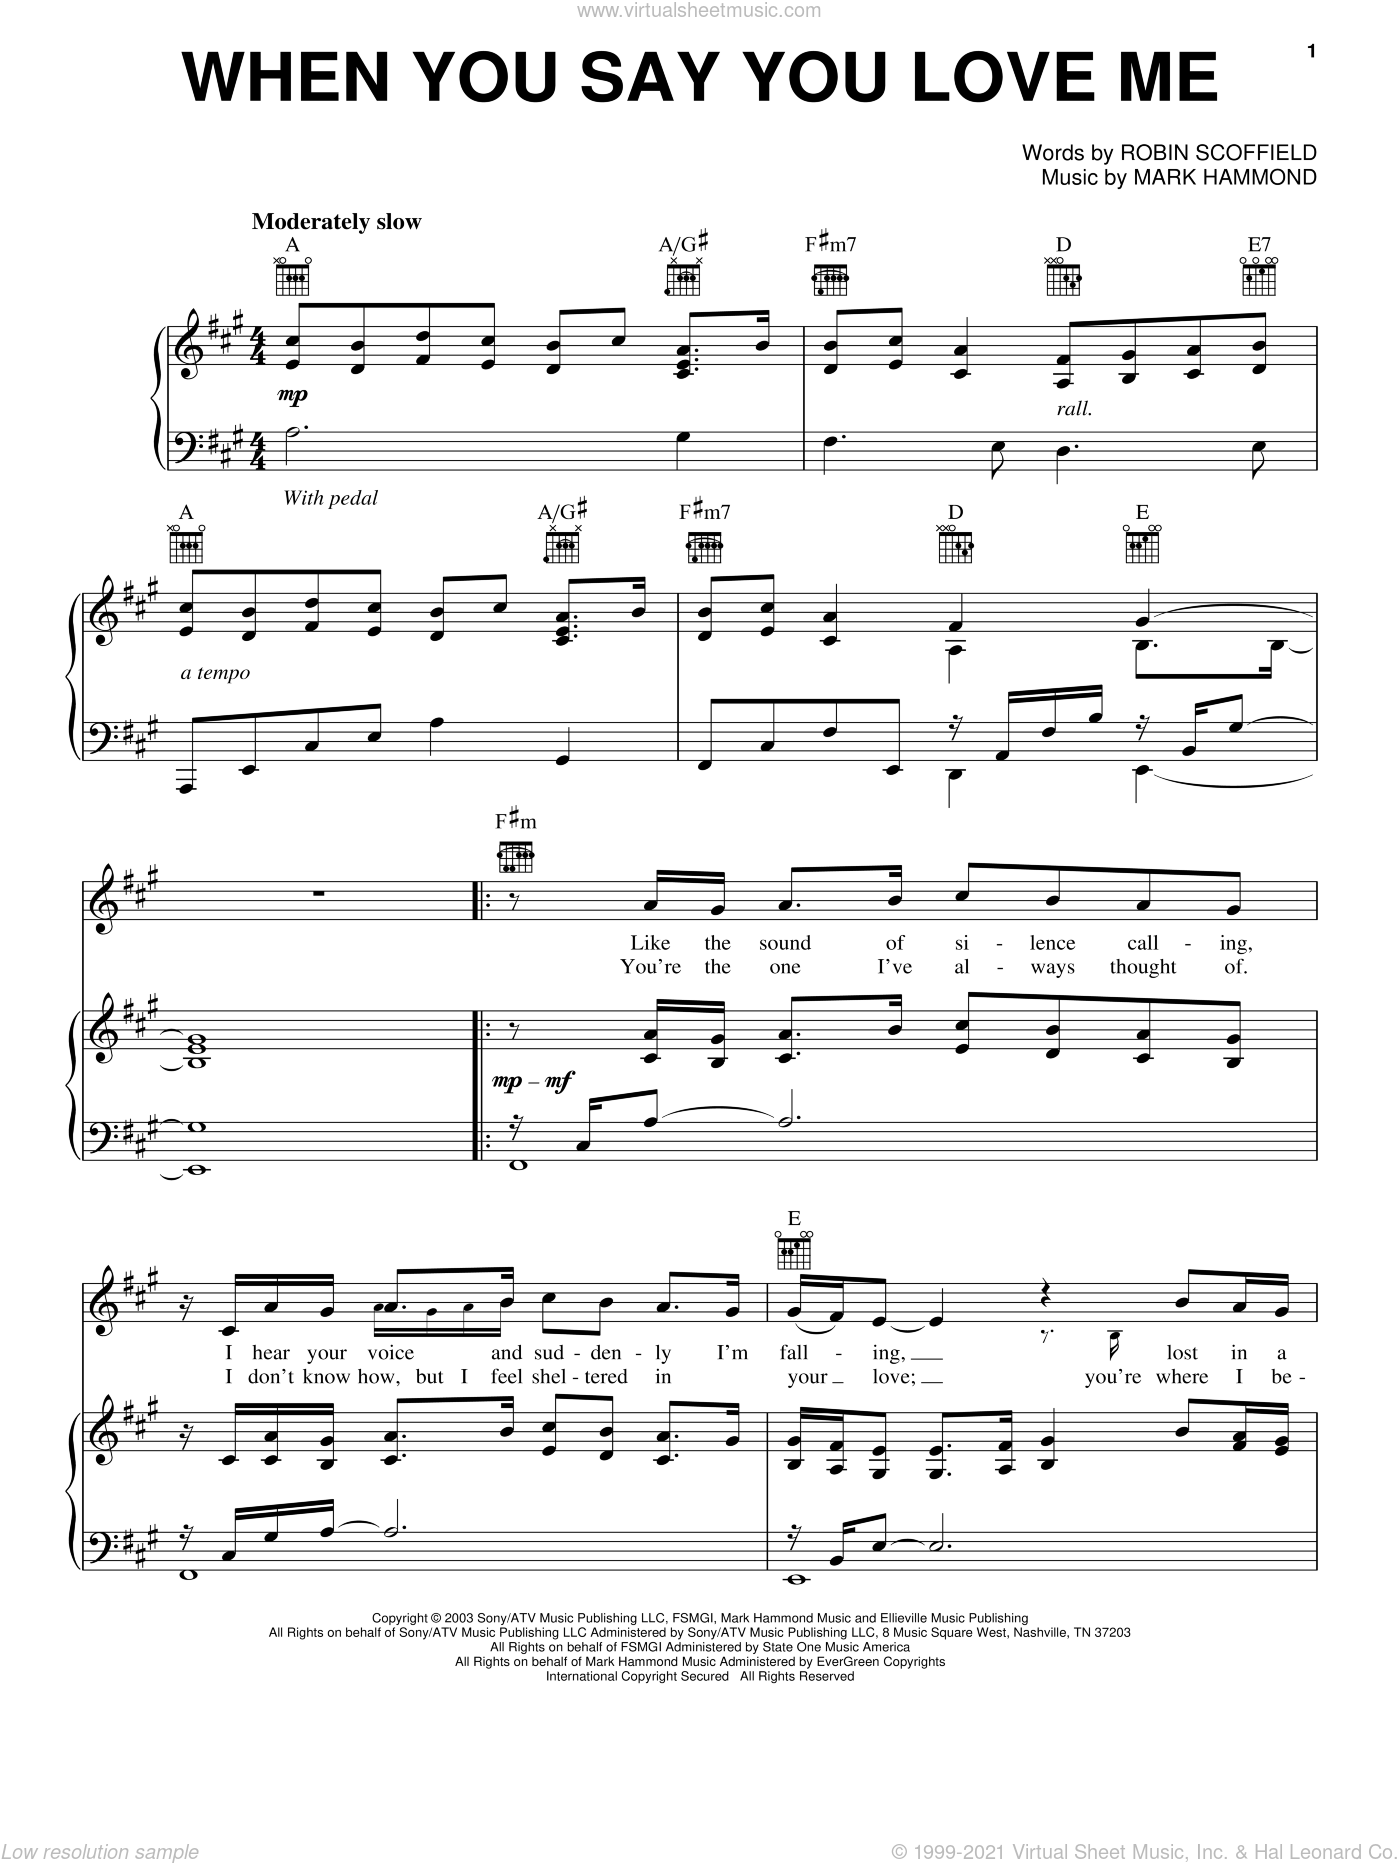 When You Say You Love Me sheet music for voice, piano or guitar by Josh Groban, Mark Hammond and Robin Scoffield, wedding score, intermediate skill level